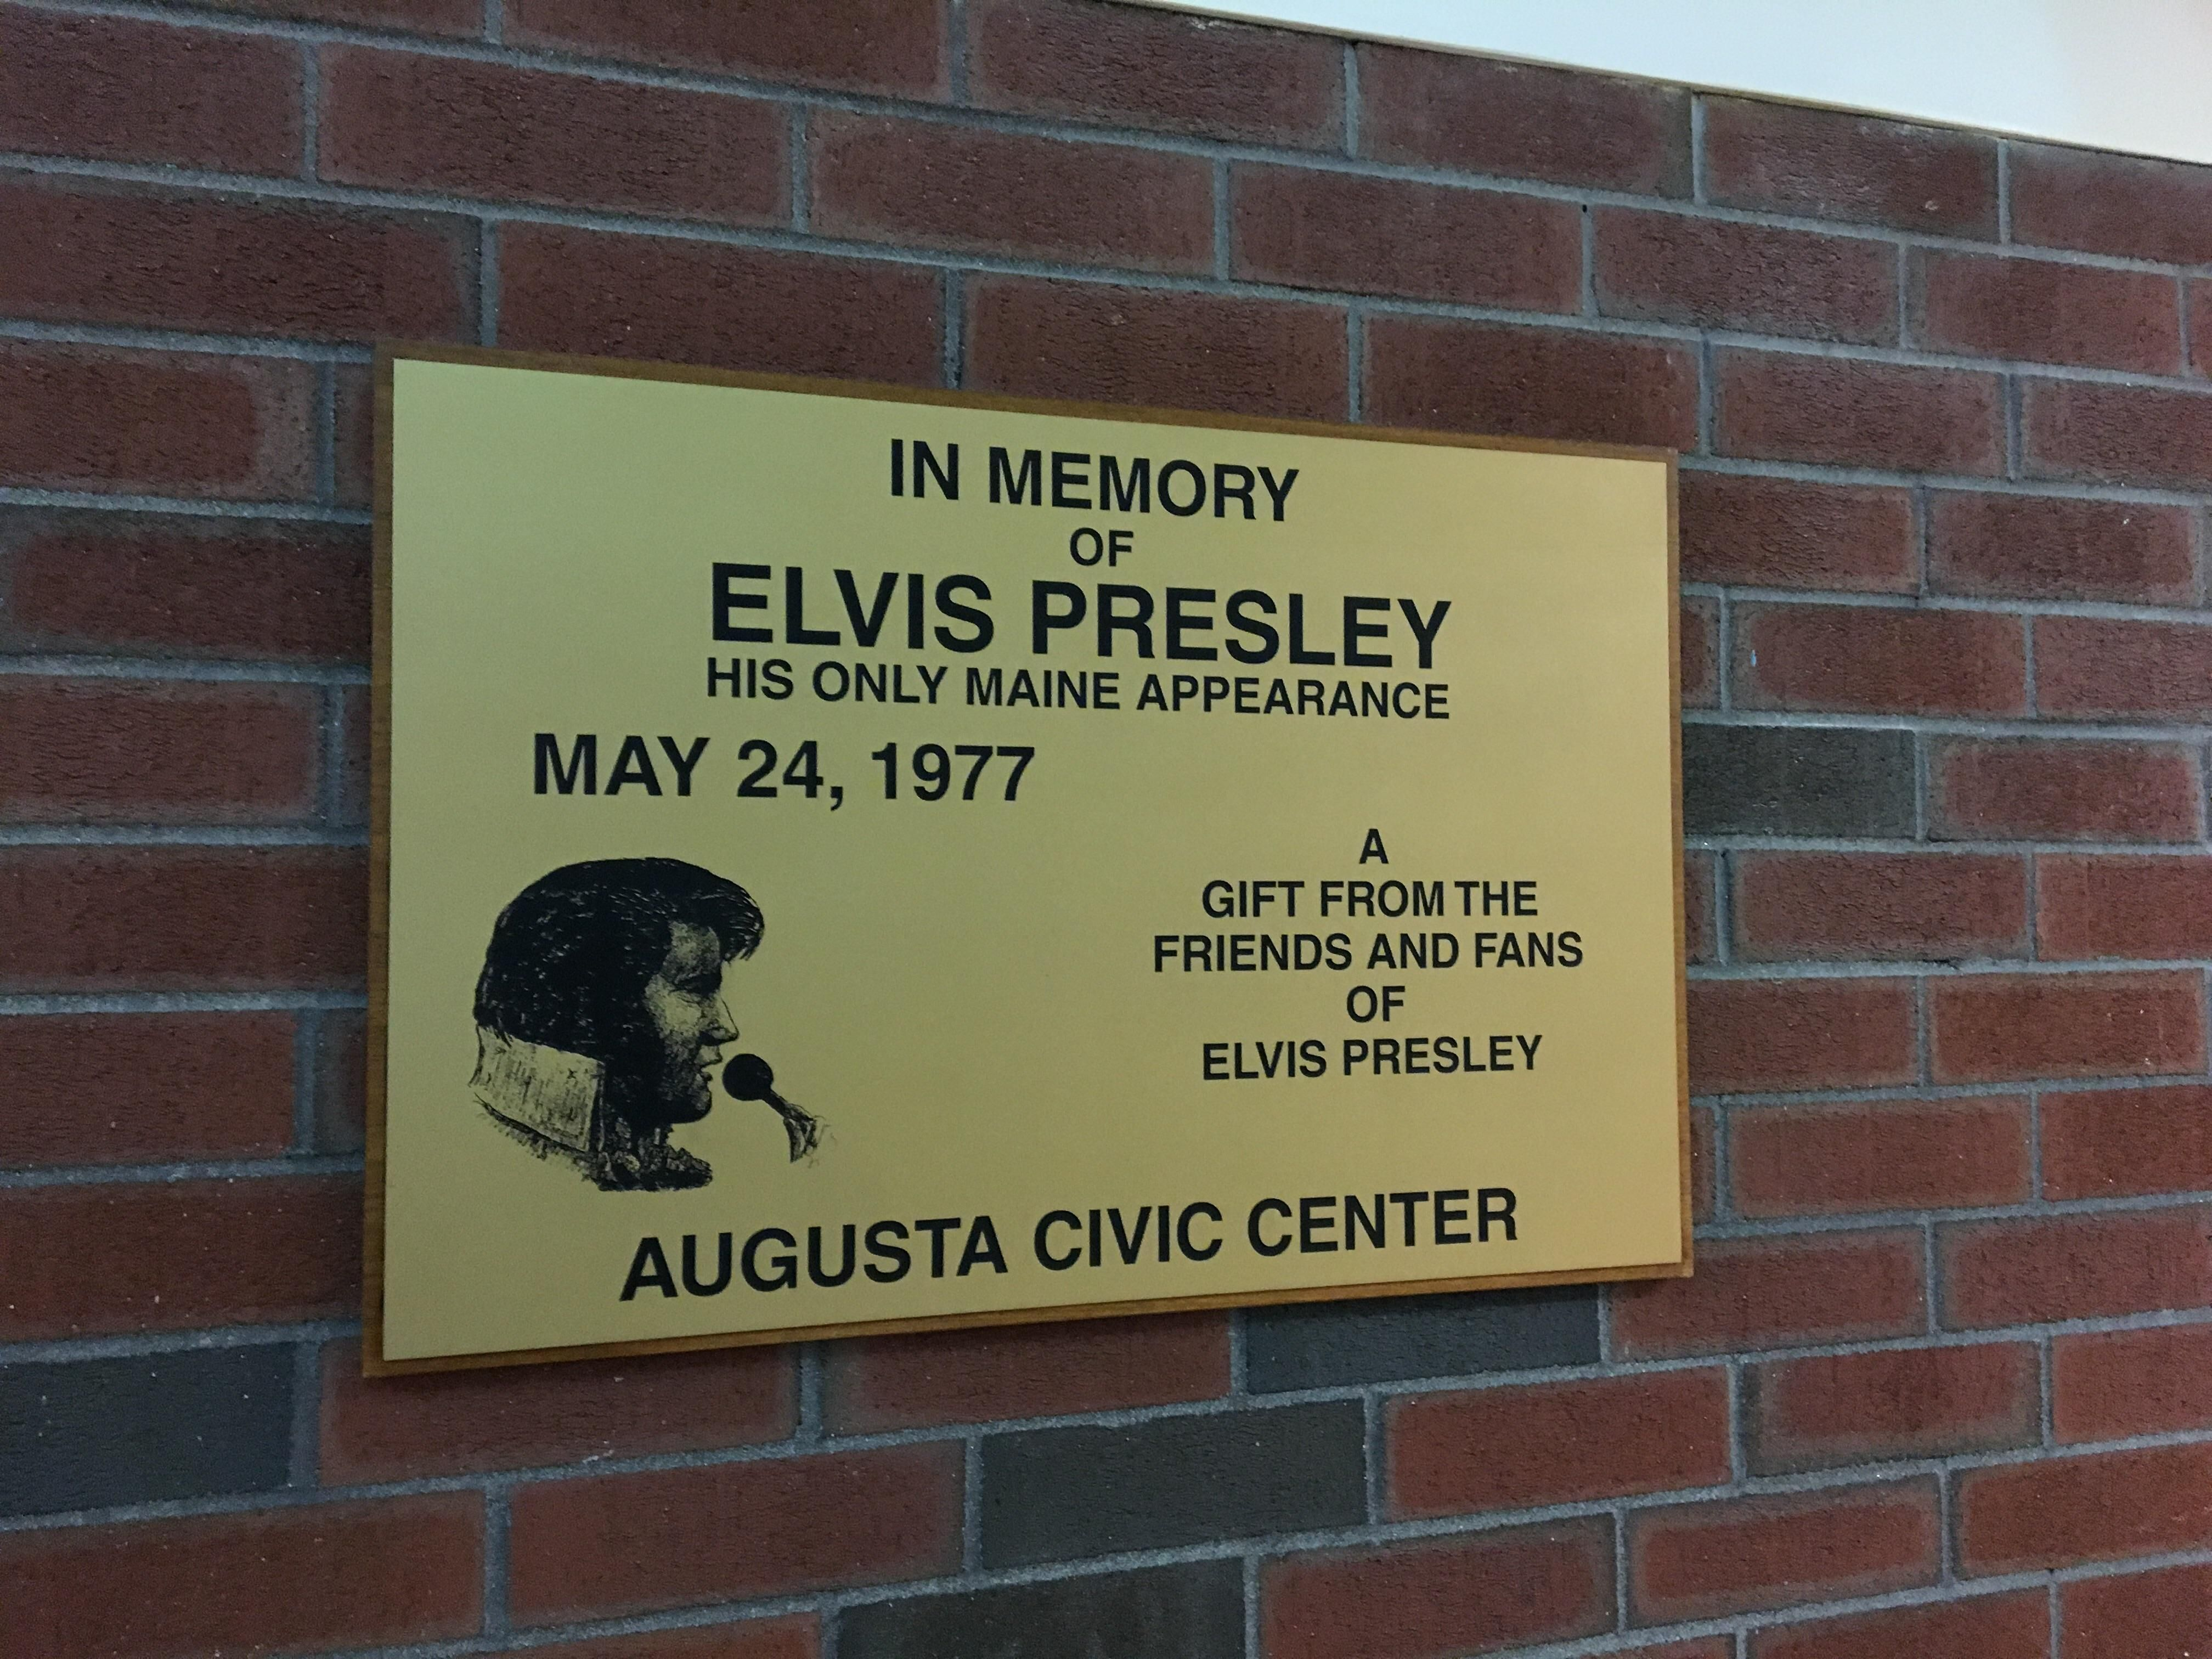 Plaque hanging on the wall at the Augusta Civic Center in